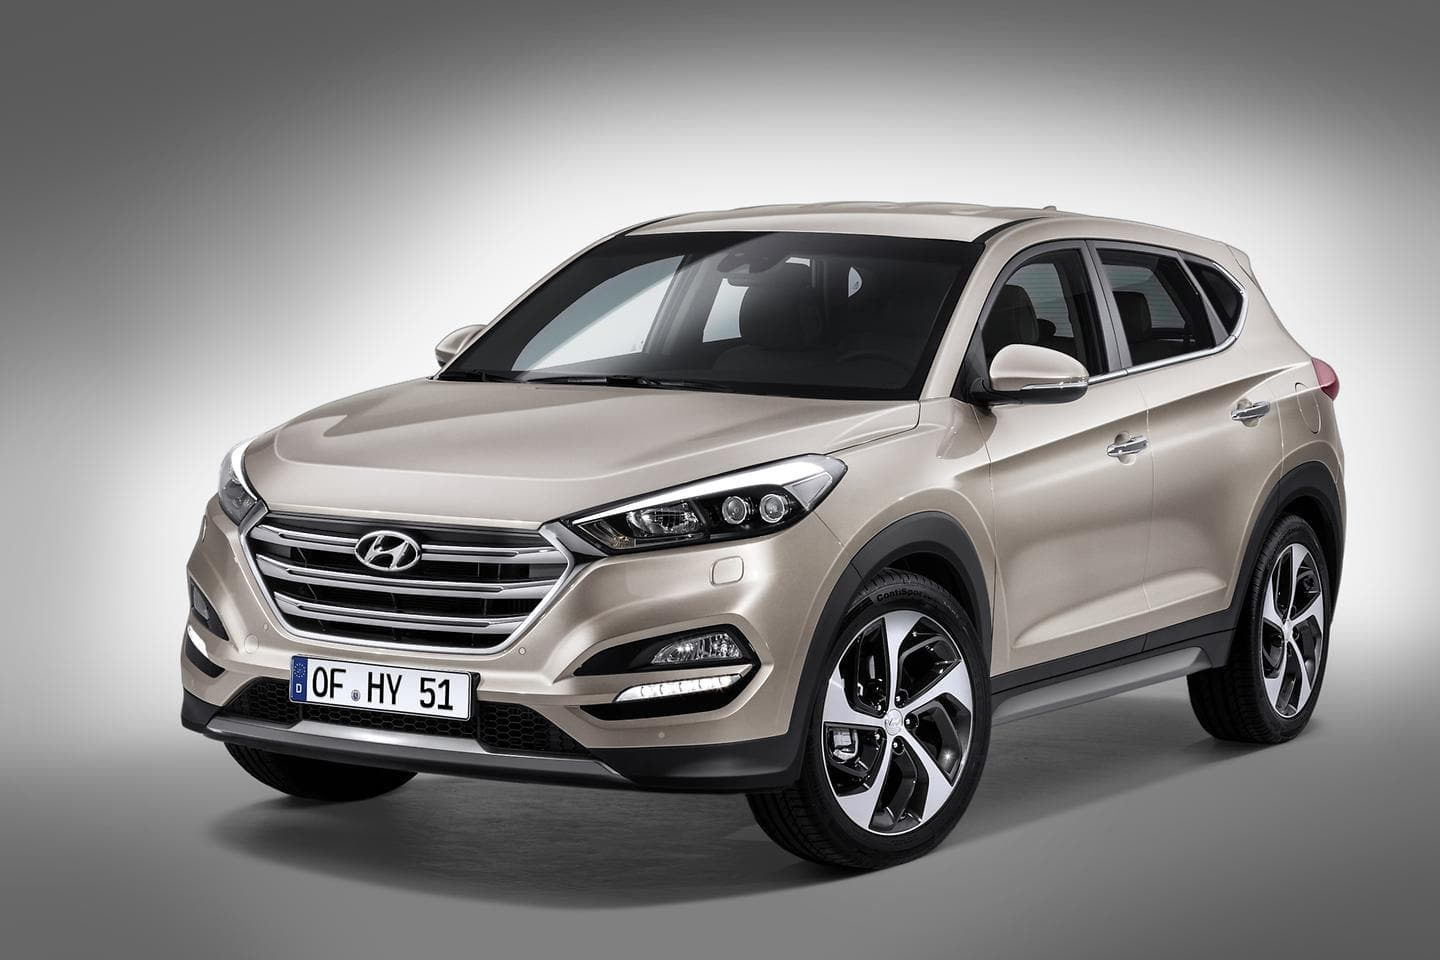 All-New Tucson - Shifting perceptions through bold design and technology